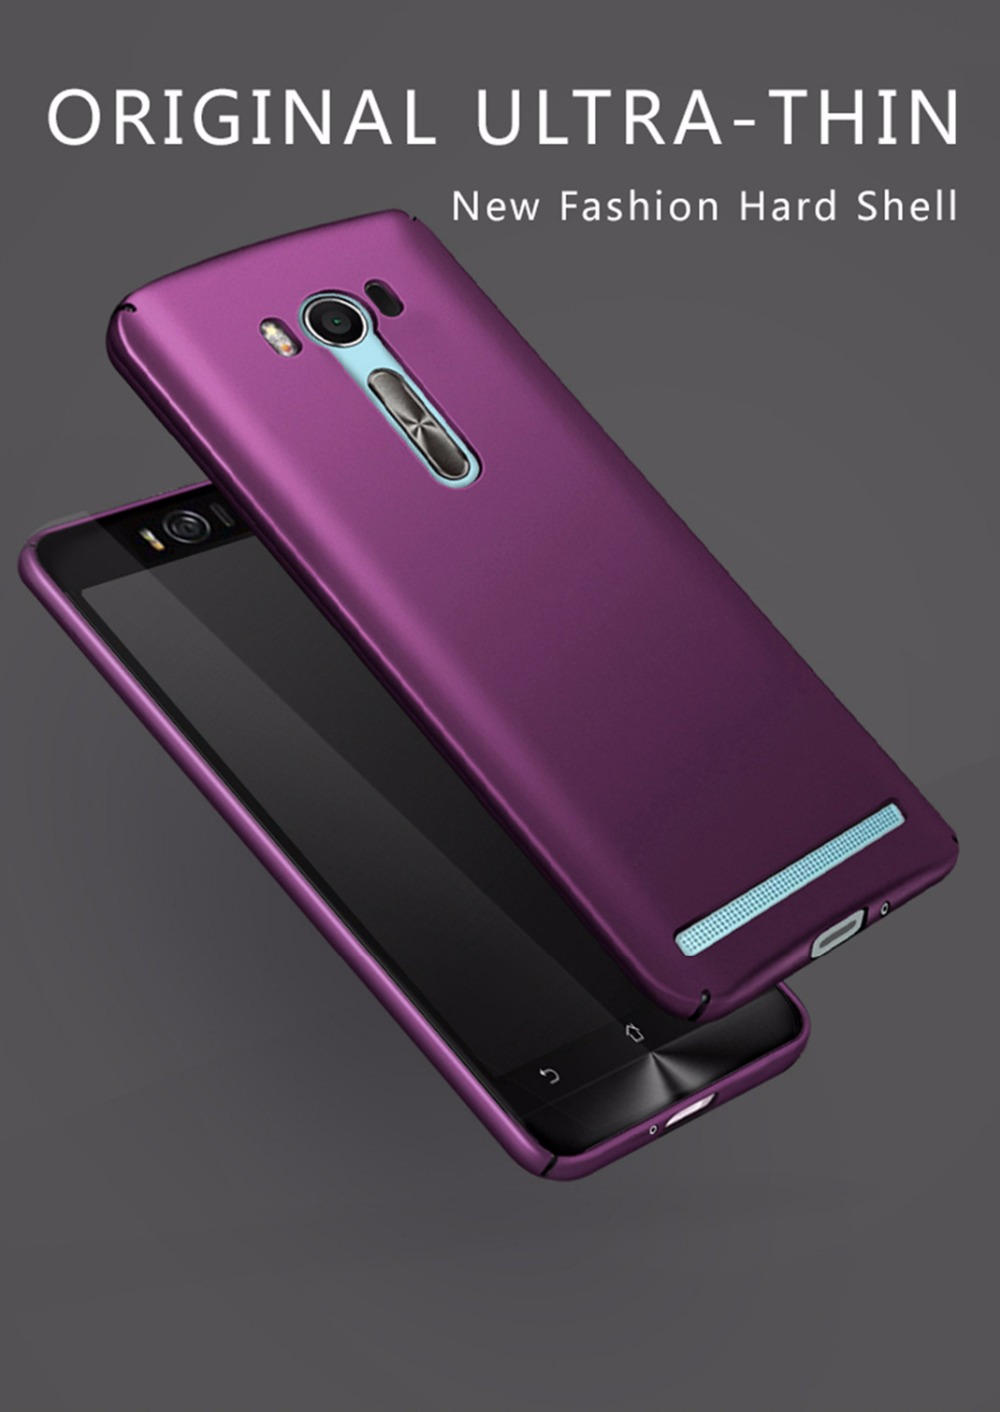 Case For Asus Zenfone Selfie Zd551kl 4g Lte 55 Inch Super Frosted Selfi Phone Bags Cases Productdescription Aeproduct